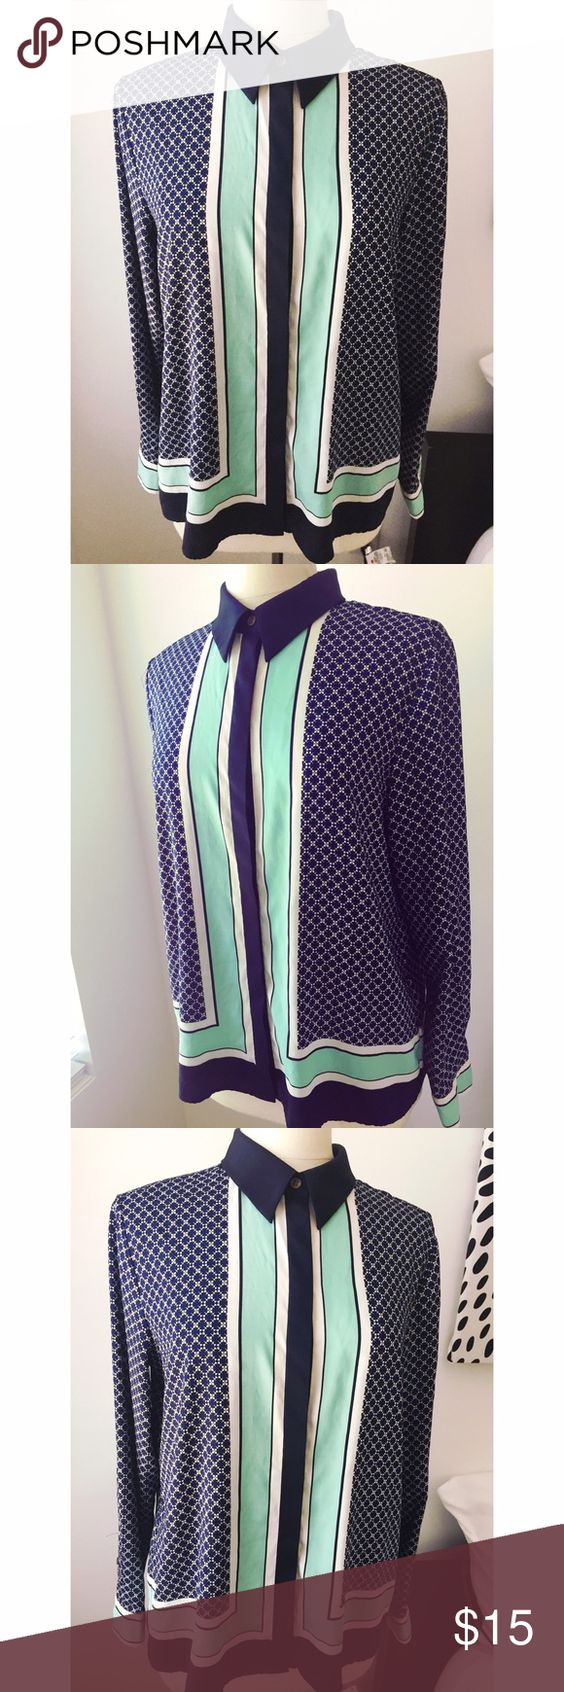 Vince Camuto Blouse Vince Camuto Blouse Tops Blouses